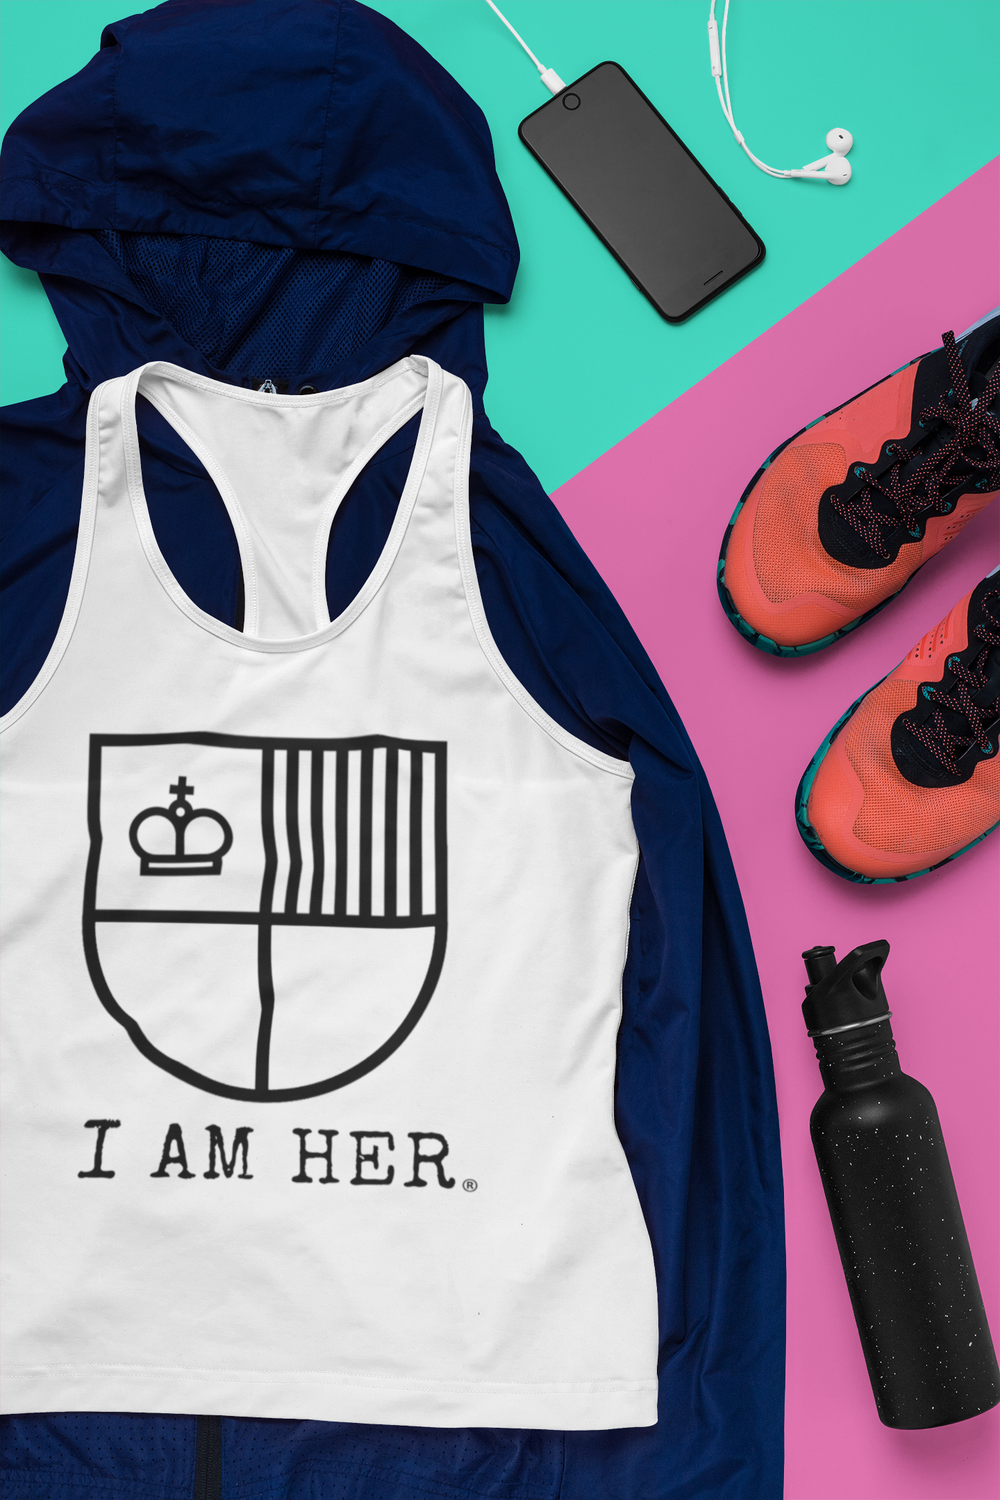 I AM HER Shield Women's Racerback Tank Tops - I AM HER Apparel, LLC